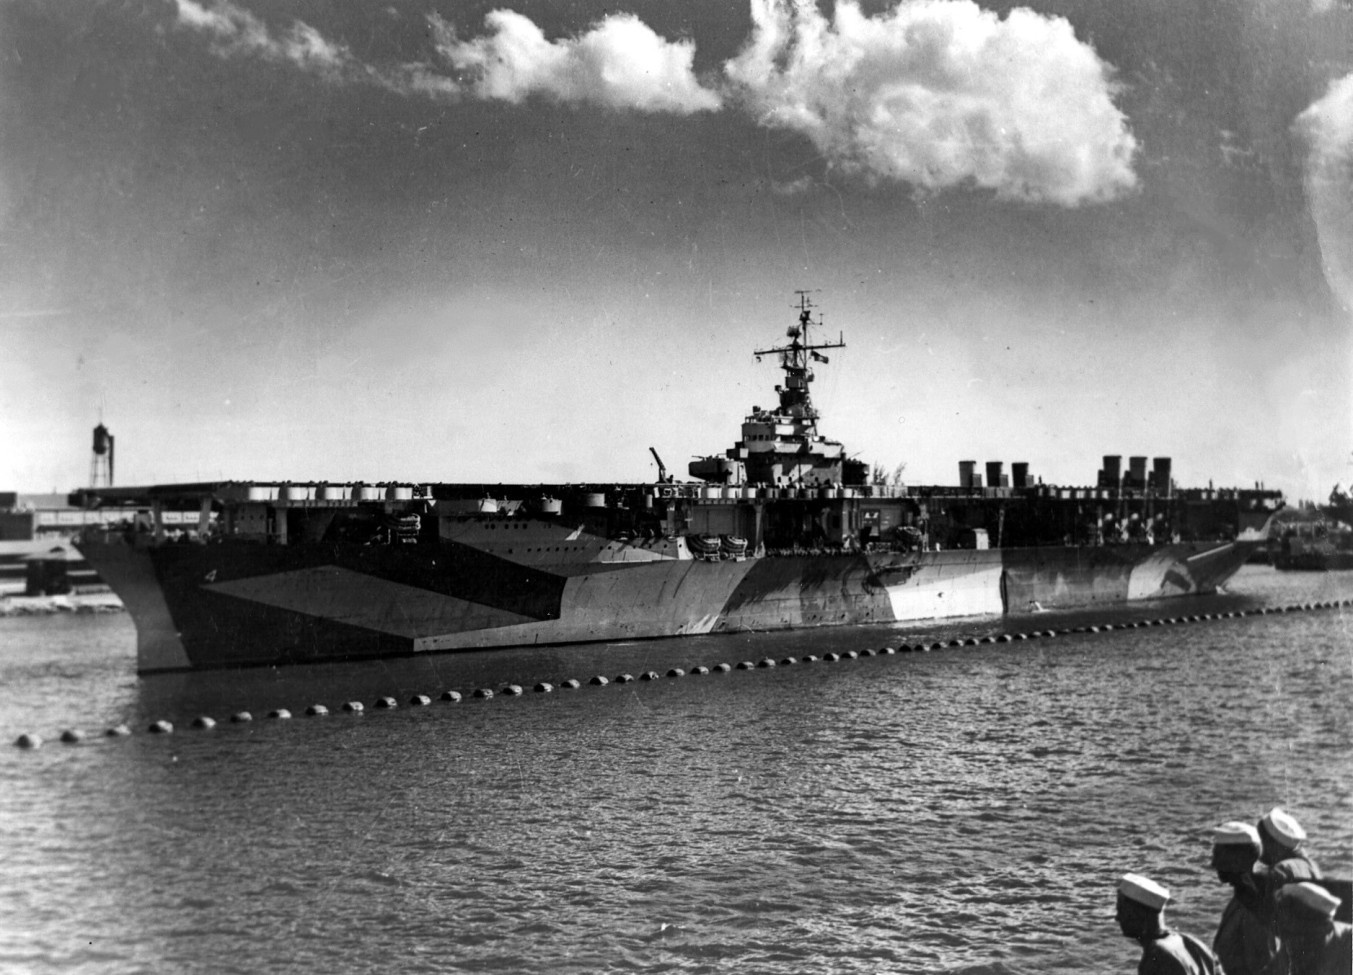 USS Ranger (CV-4), named for the famous sloop that had been the first ship flying the American flag to be saluted back in 1778, CV-4 was the first built from the keel up as a carrier. In a real sense, Coolidge made this essential component of America's navy possible when he approved the Cruiser Act. Laid down on 26 September 1931 in Newport News, Virginia, Ranger would be launched two years later and commissioned in 1934. She was returning from patrols in the Caribbean when the Japanese attacked Pearl Harbor. The largest carrier in the Atlantic Fleet at that time, she led the amphibious assault on French Morocco in 1942, launching 496 sorties over three days, forcing the enemy to capitulate before Allied pressure. Returning to home coasts, she patrolled the Atlantic seaboard until joined to the British Home Fleet, protecting the approaches to those islands. Taking the offensive to Germany's back door, she waged war in Norwegian waters, successfully targeting convoys, tankers, merchant ships and transports. Winding down her wartime service, Ranger carried planes to Casablanca then personnel to the Pacific and finally brought essential training to both air and sea units operating out of the west coast. Working her way back to the east coast, she retired from the service over a year after the end of the war, October 1946.